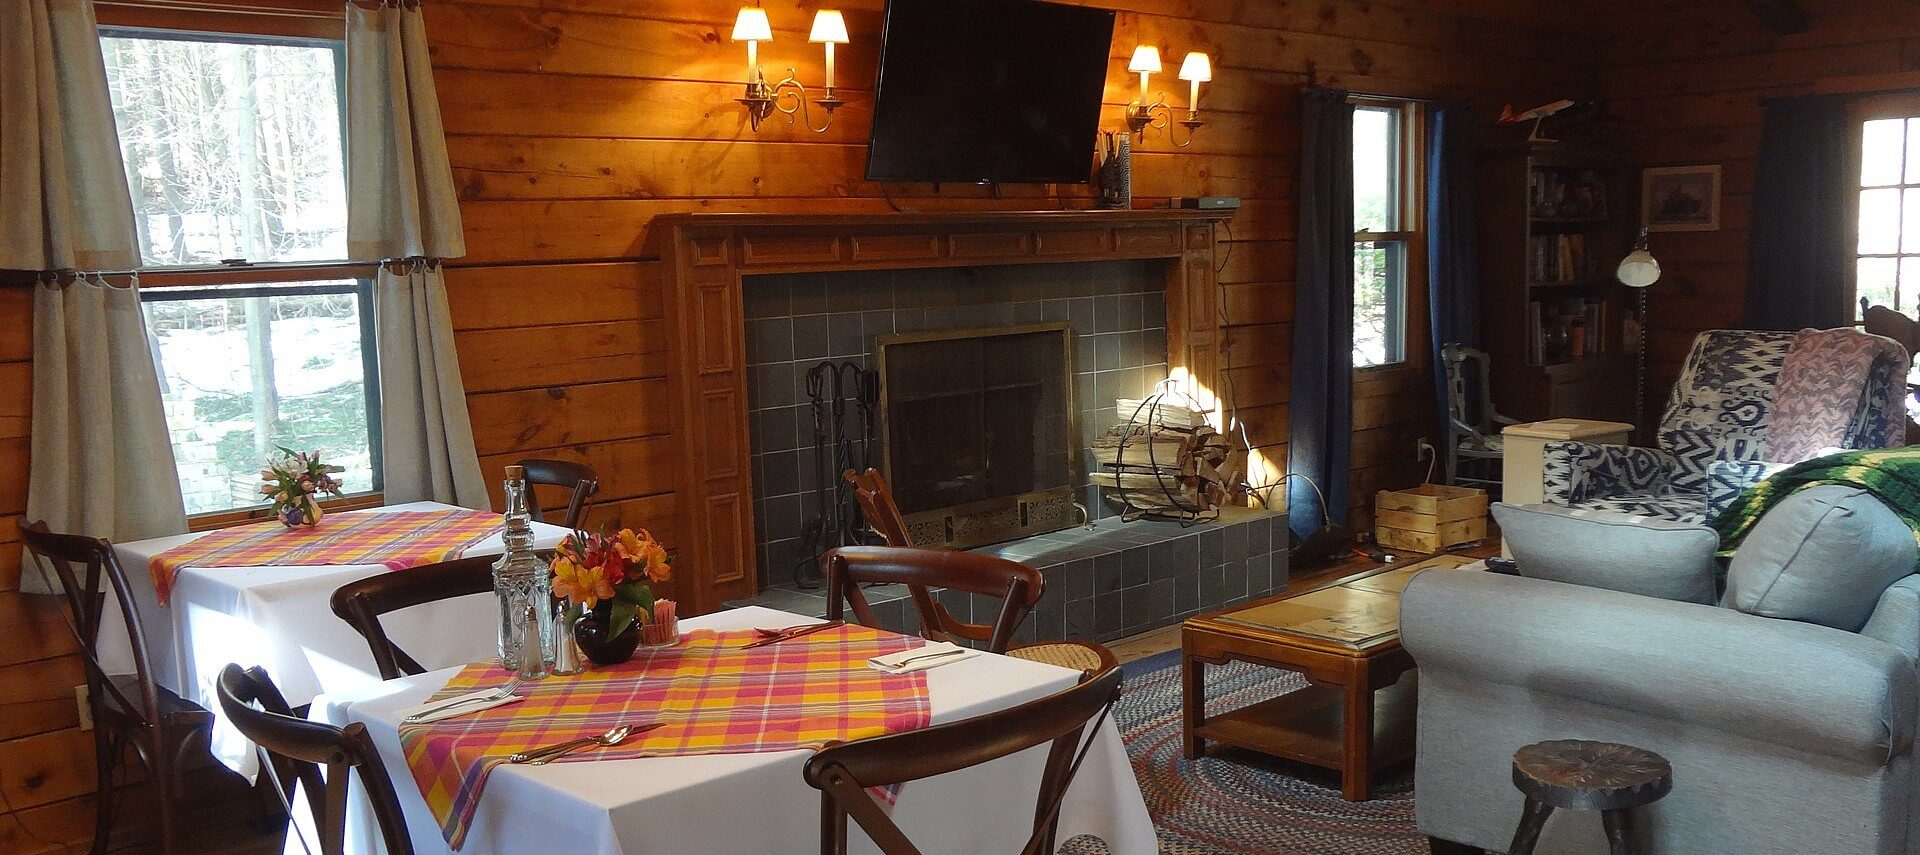 Spacious room with wood paneled walls, couch and chair in front of a fireplace with TV overhead and two dining tables